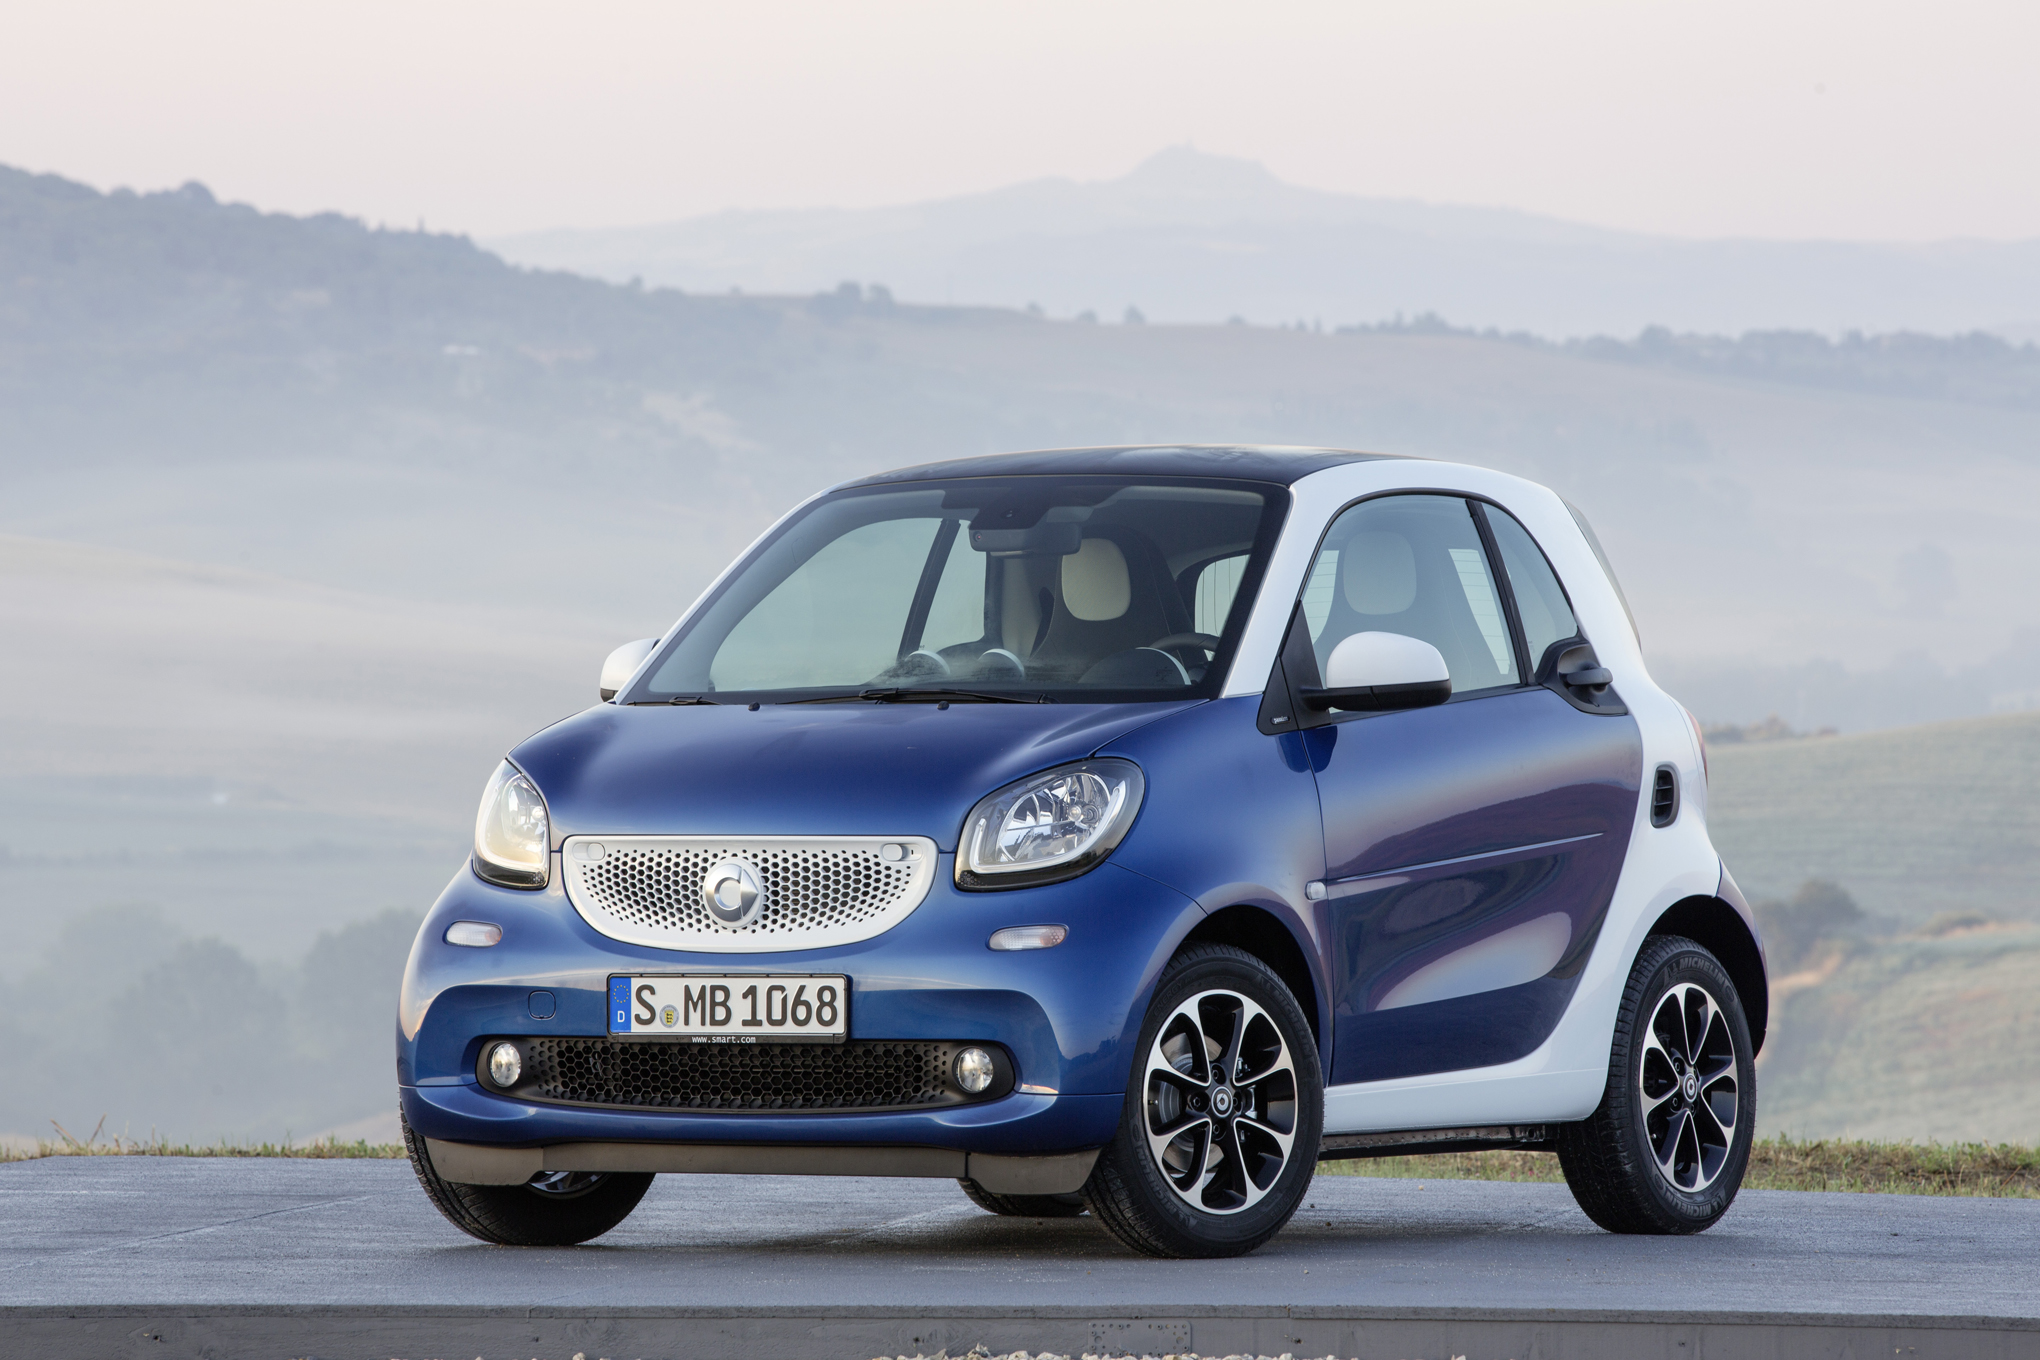 2016 Smart Fortwo to Arrive in U.S. Showrooms this Fall